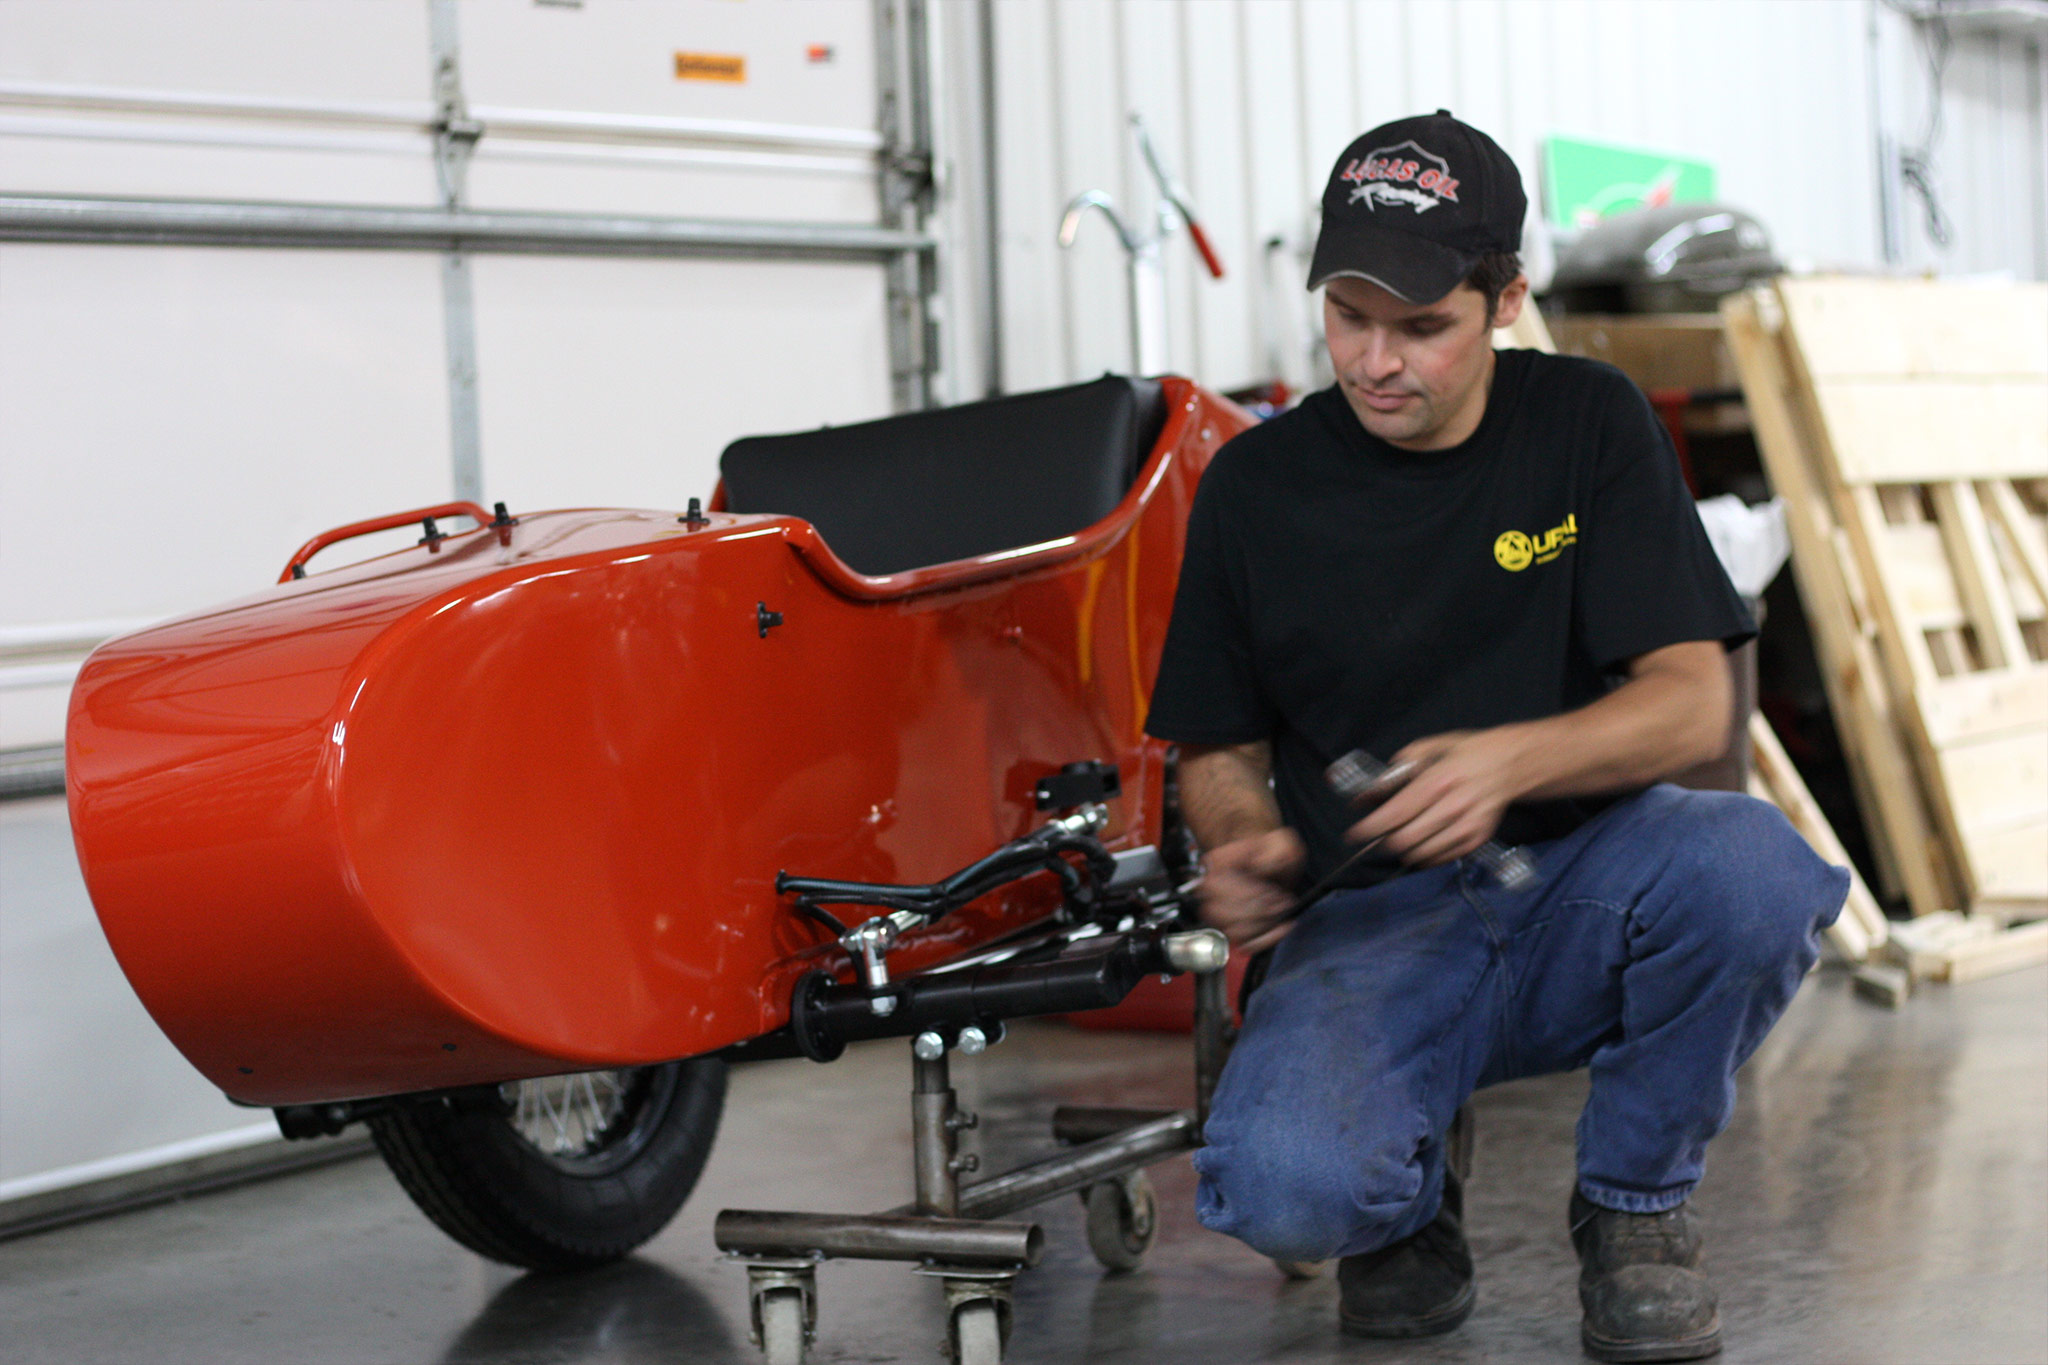 Jon prepping the sidecar for installation.